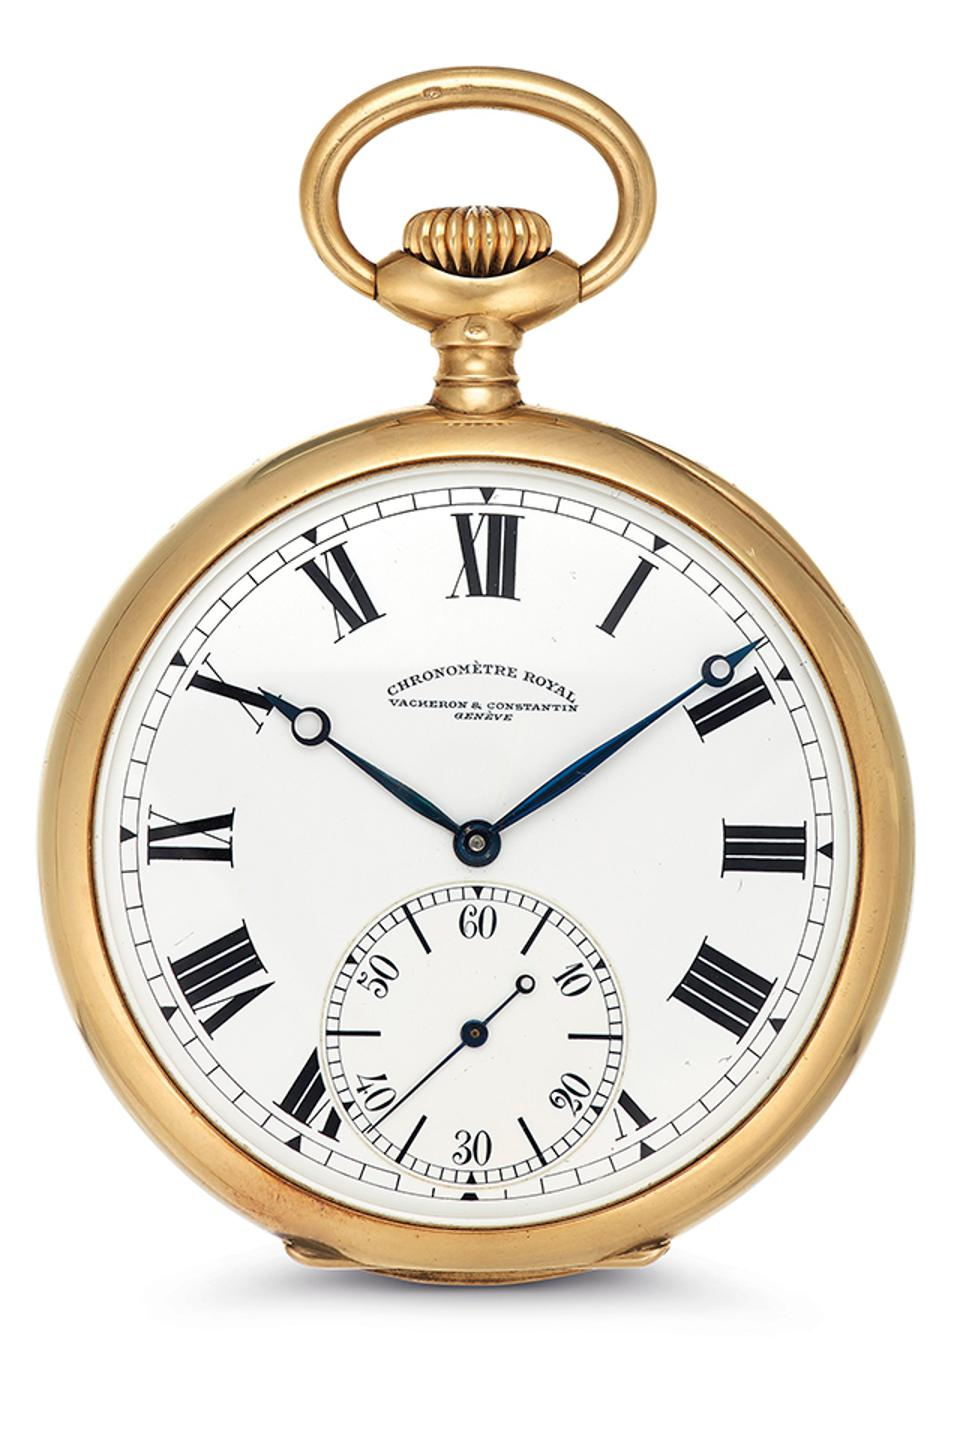 A Vacheron Constantin pocket watch once owned by hotelier Charles C. Ritz. To be auctioned by Christie's.